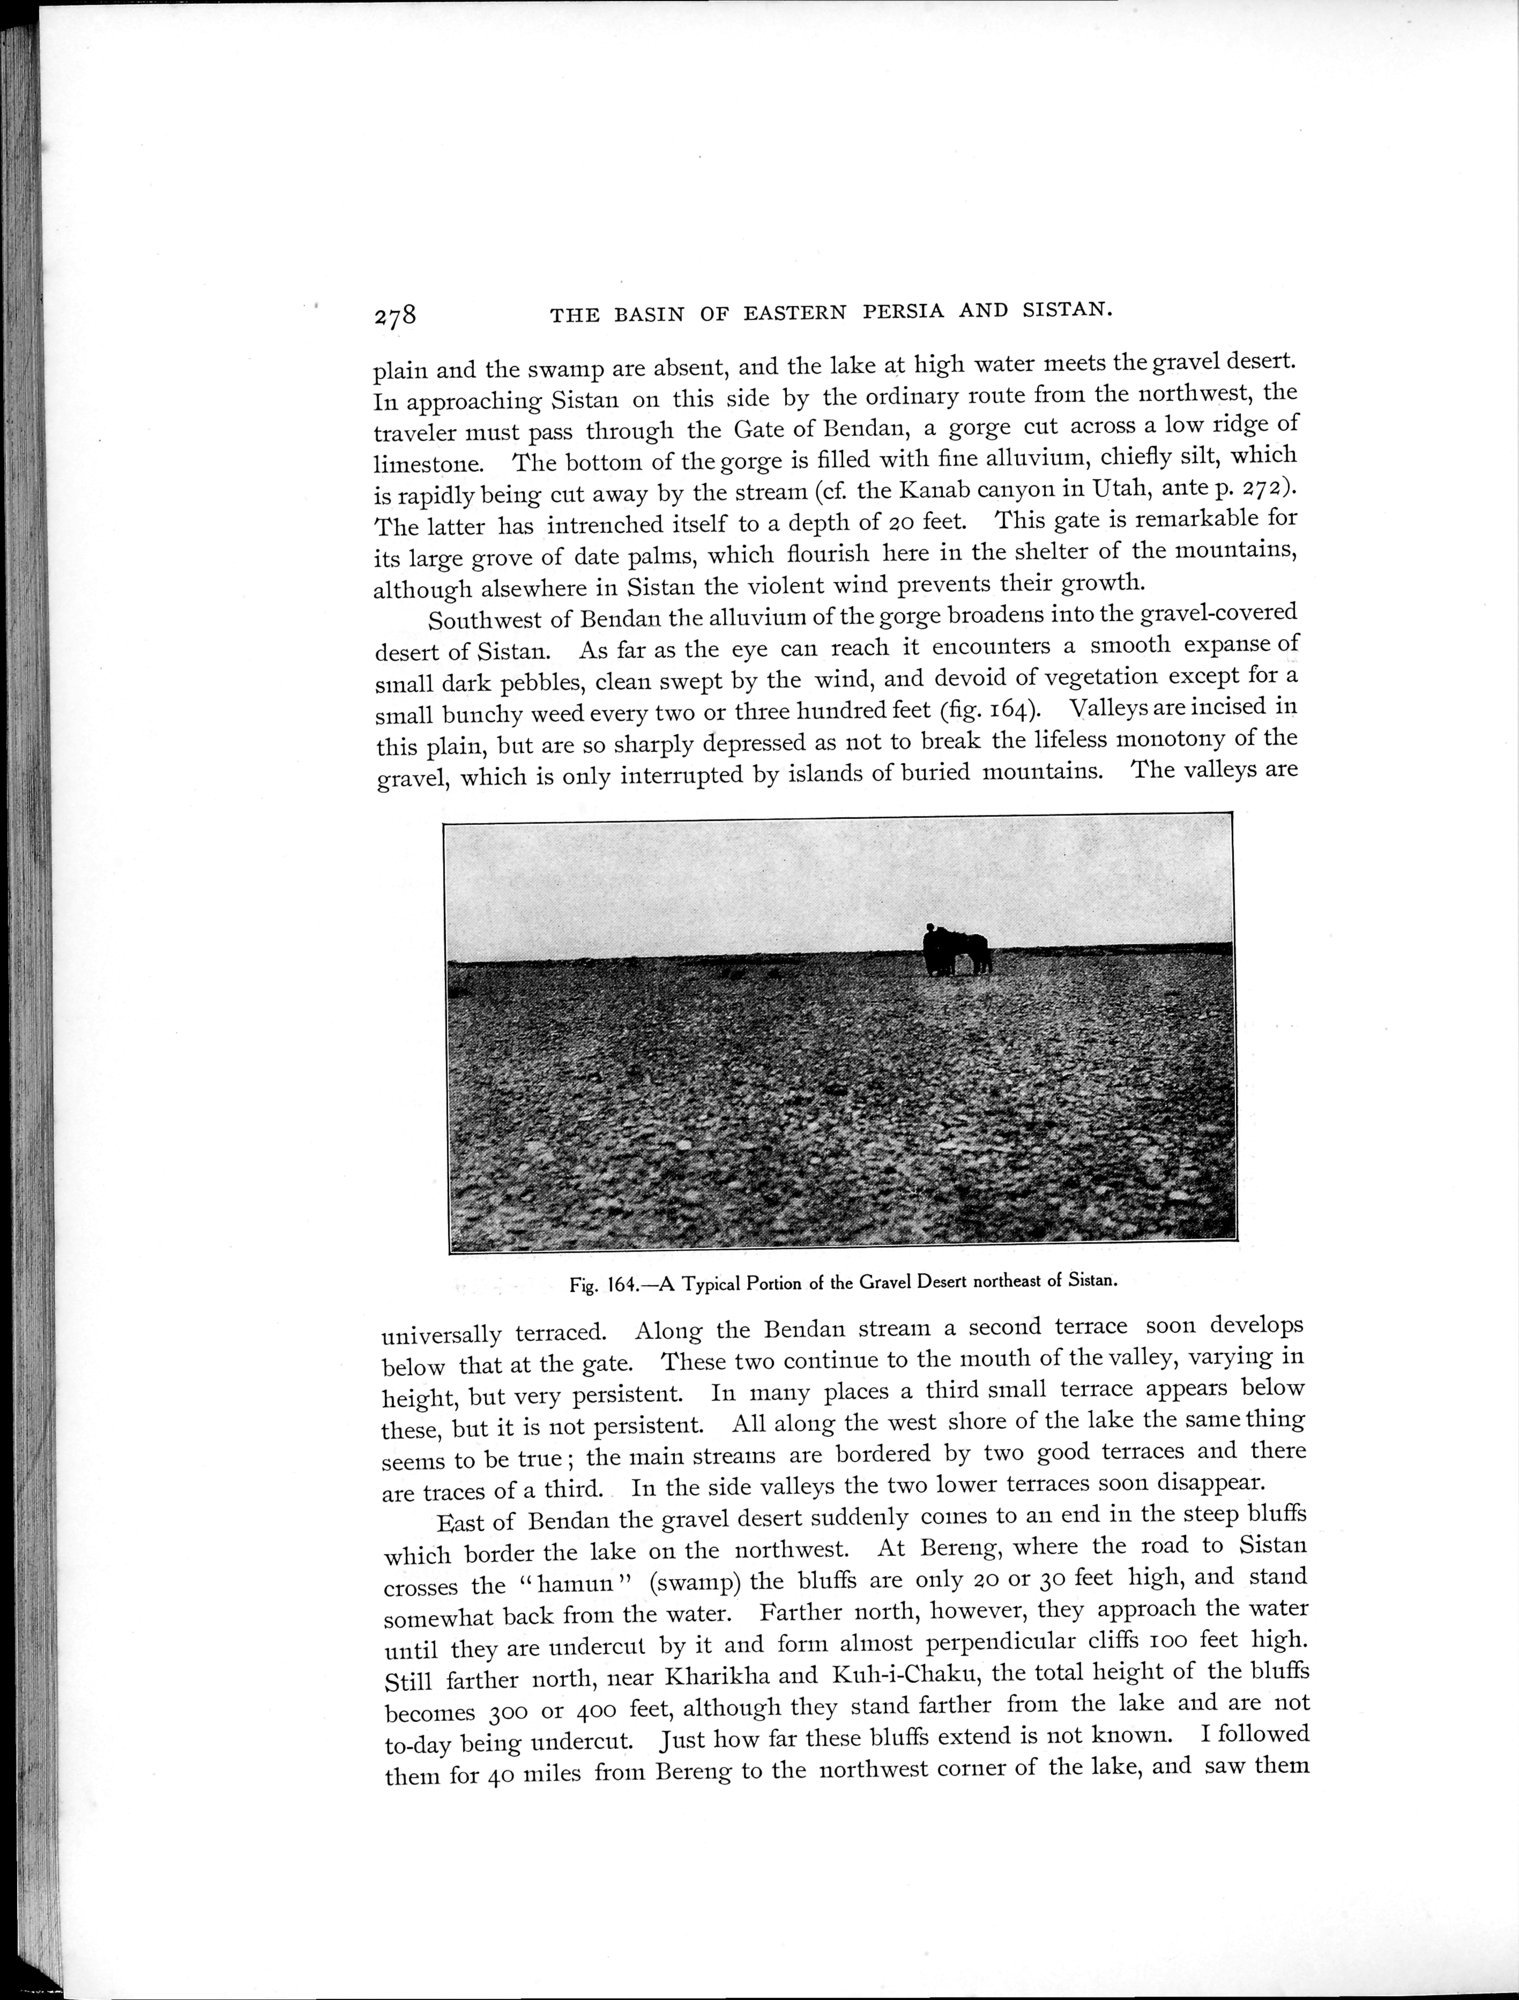 Explorations in Turkestan 1903 : vol.1 / Page 310 (Grayscale High Resolution Image)